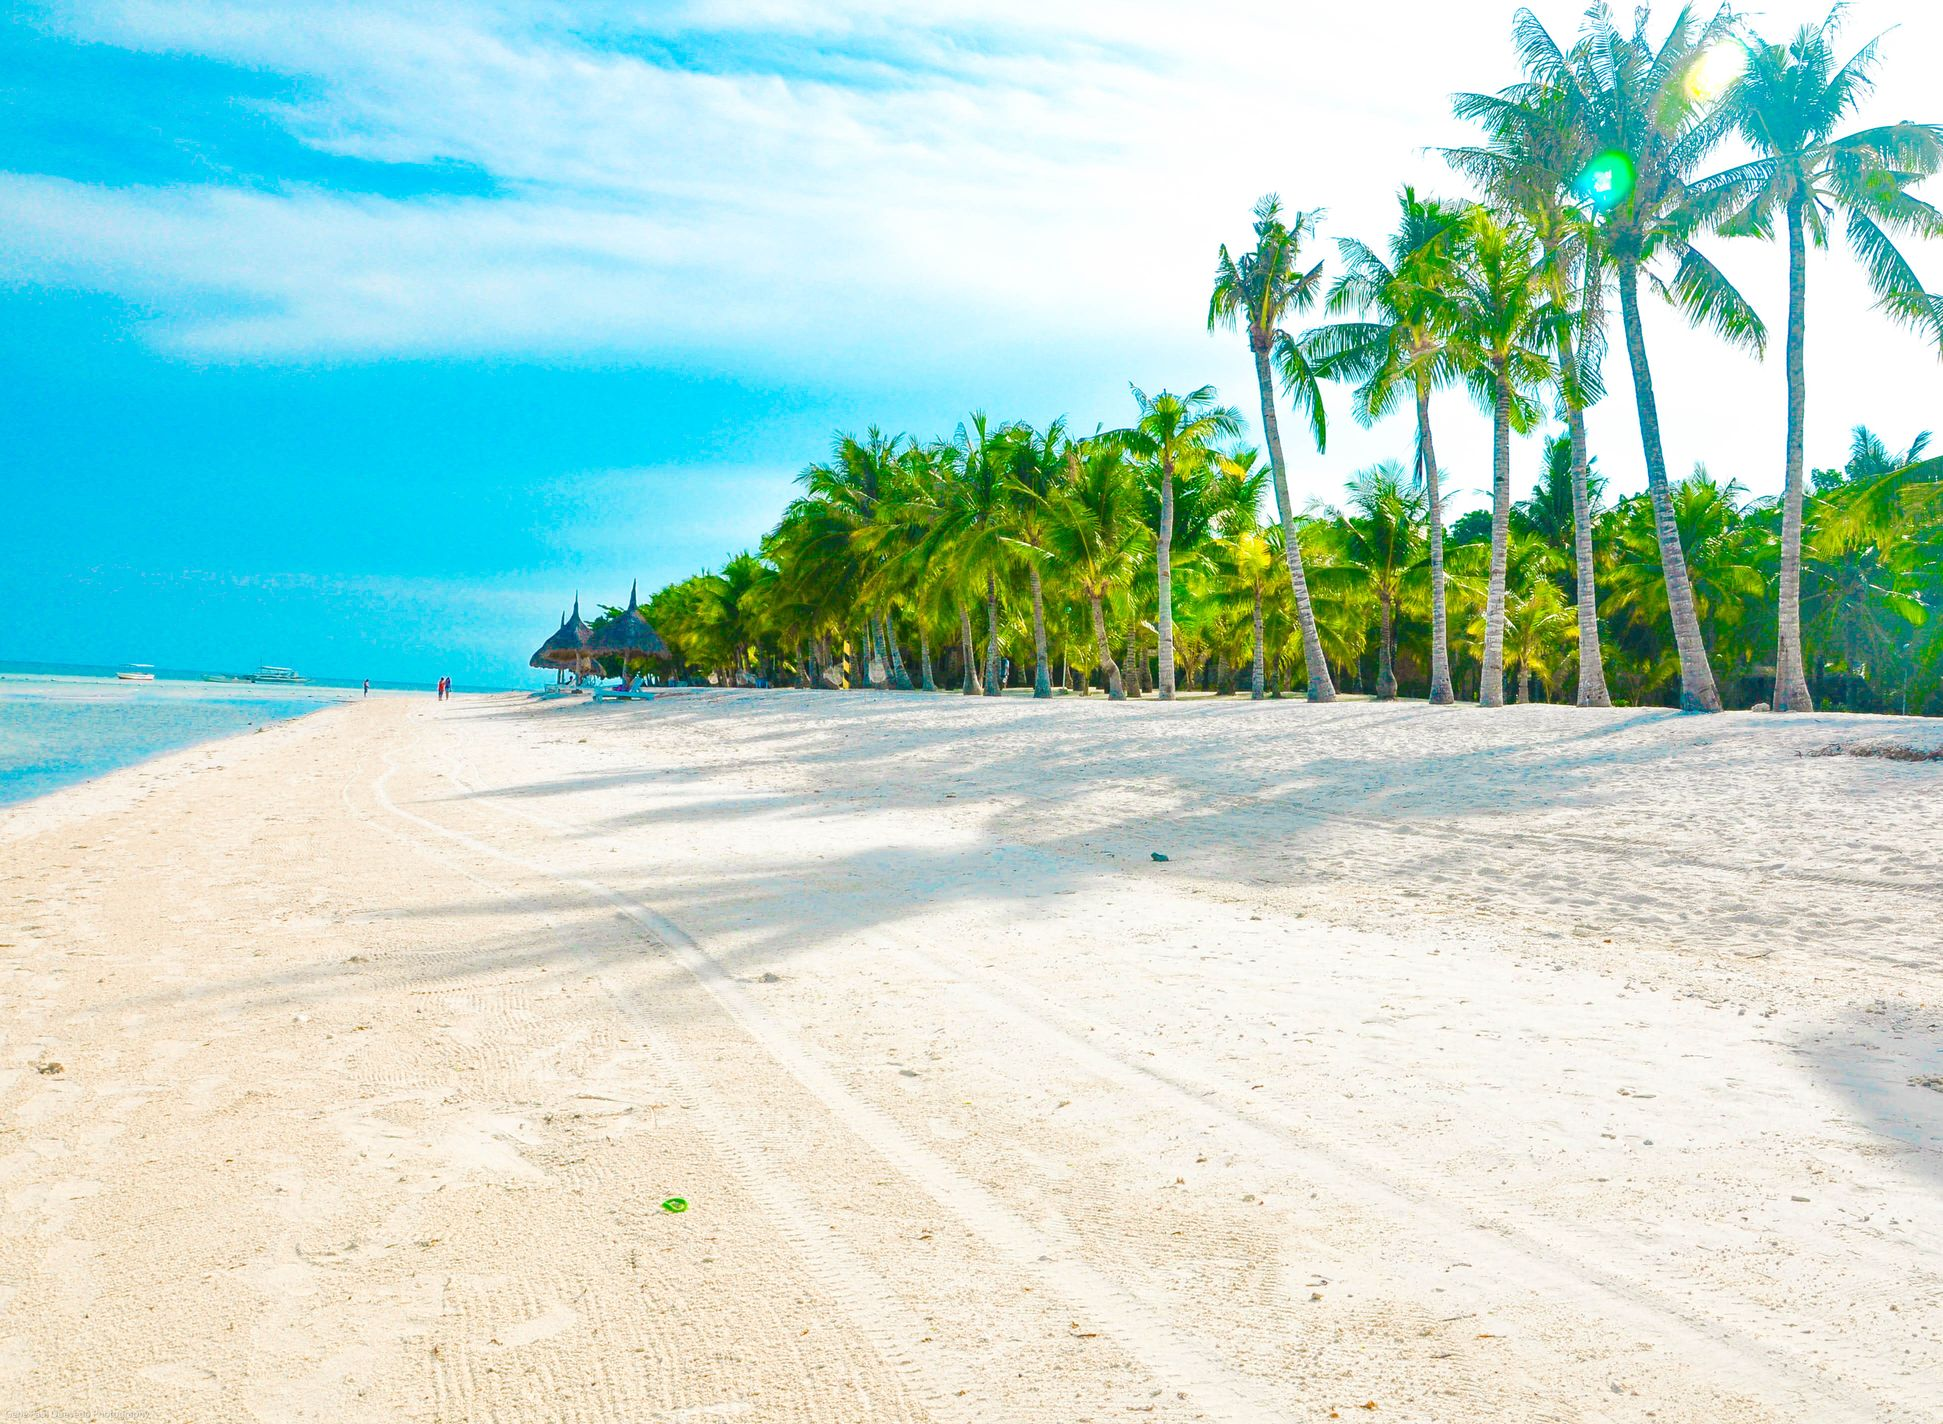 White sand beach with coconut palm trees in Panglao, Philippines